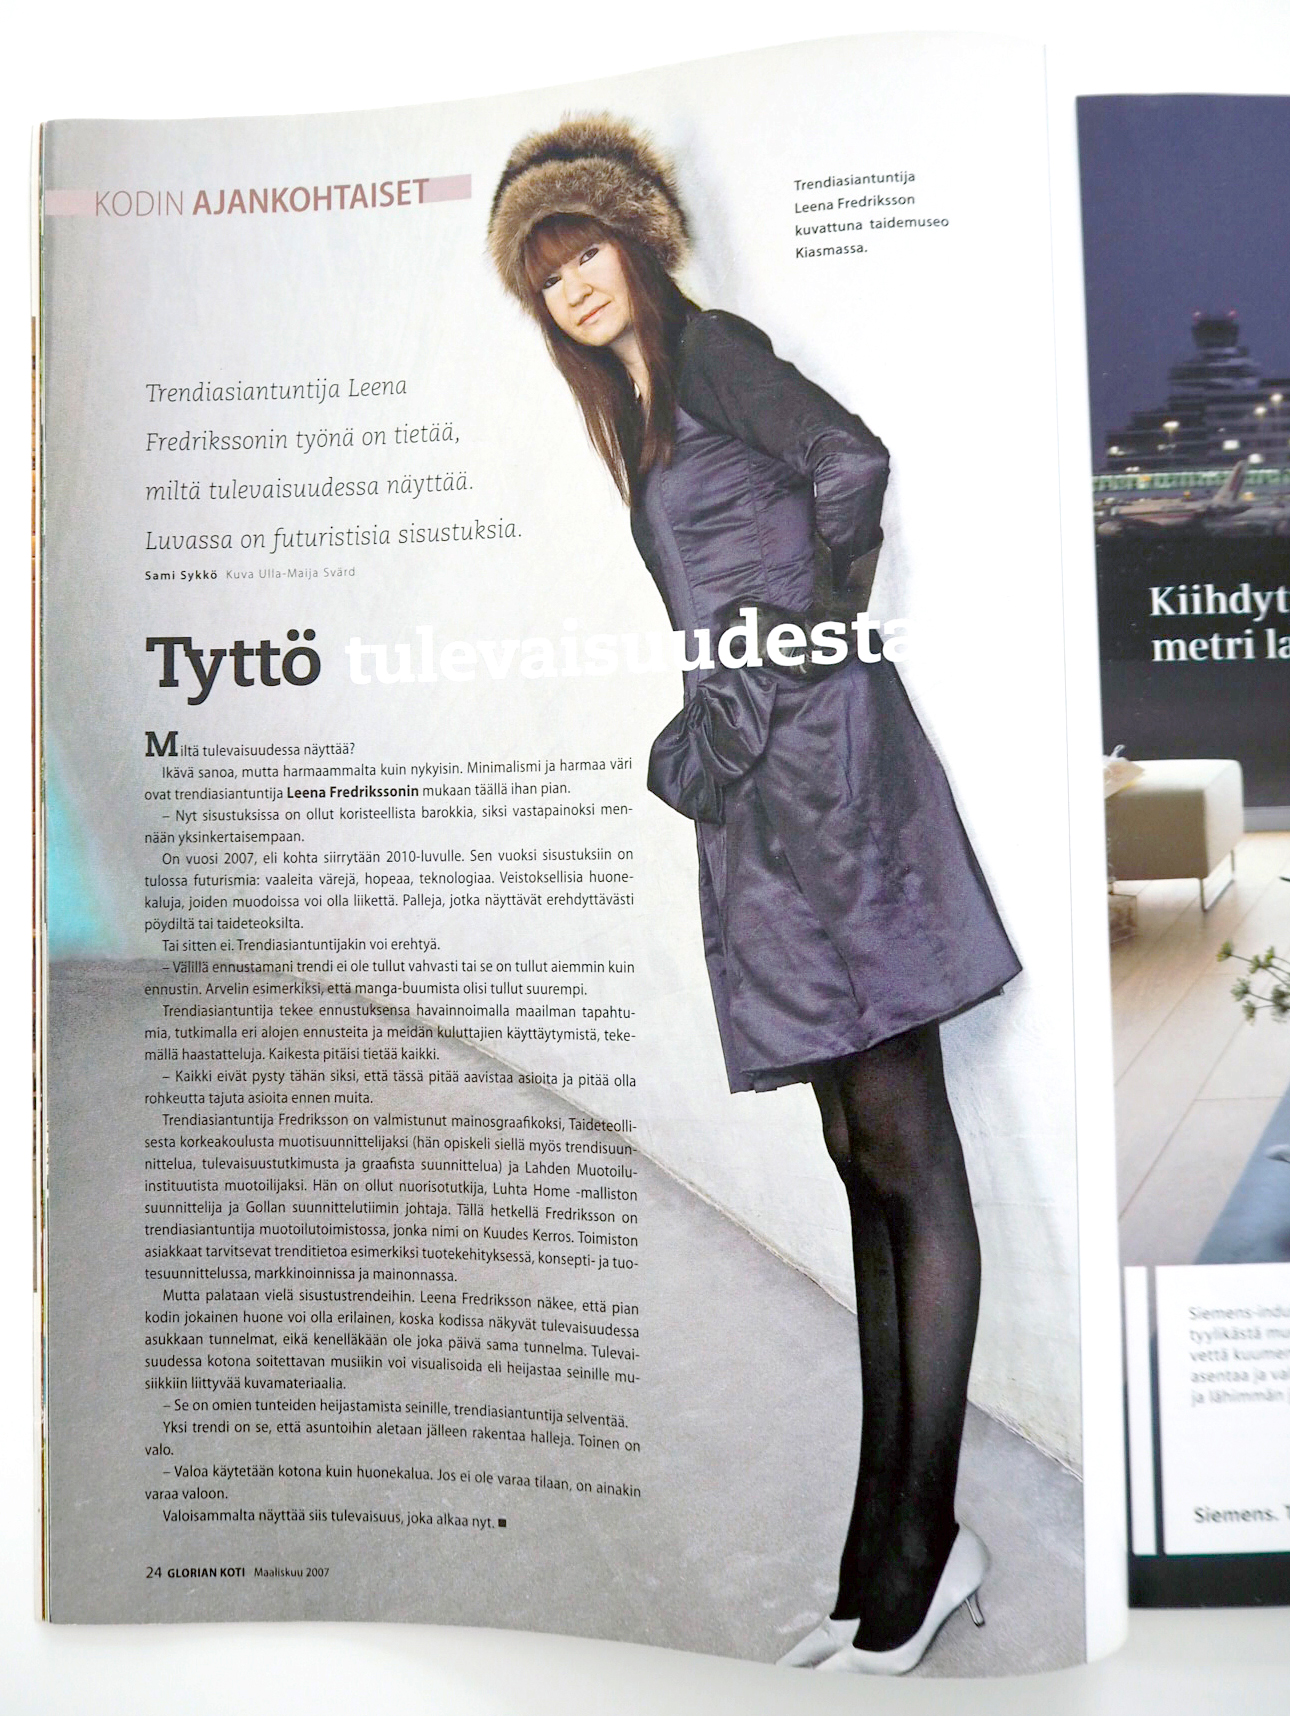 GLORIAN KOTI Magazine, 03 / 2007 Photo: Ulla-Maija Svärd, text: Sami Sykkö